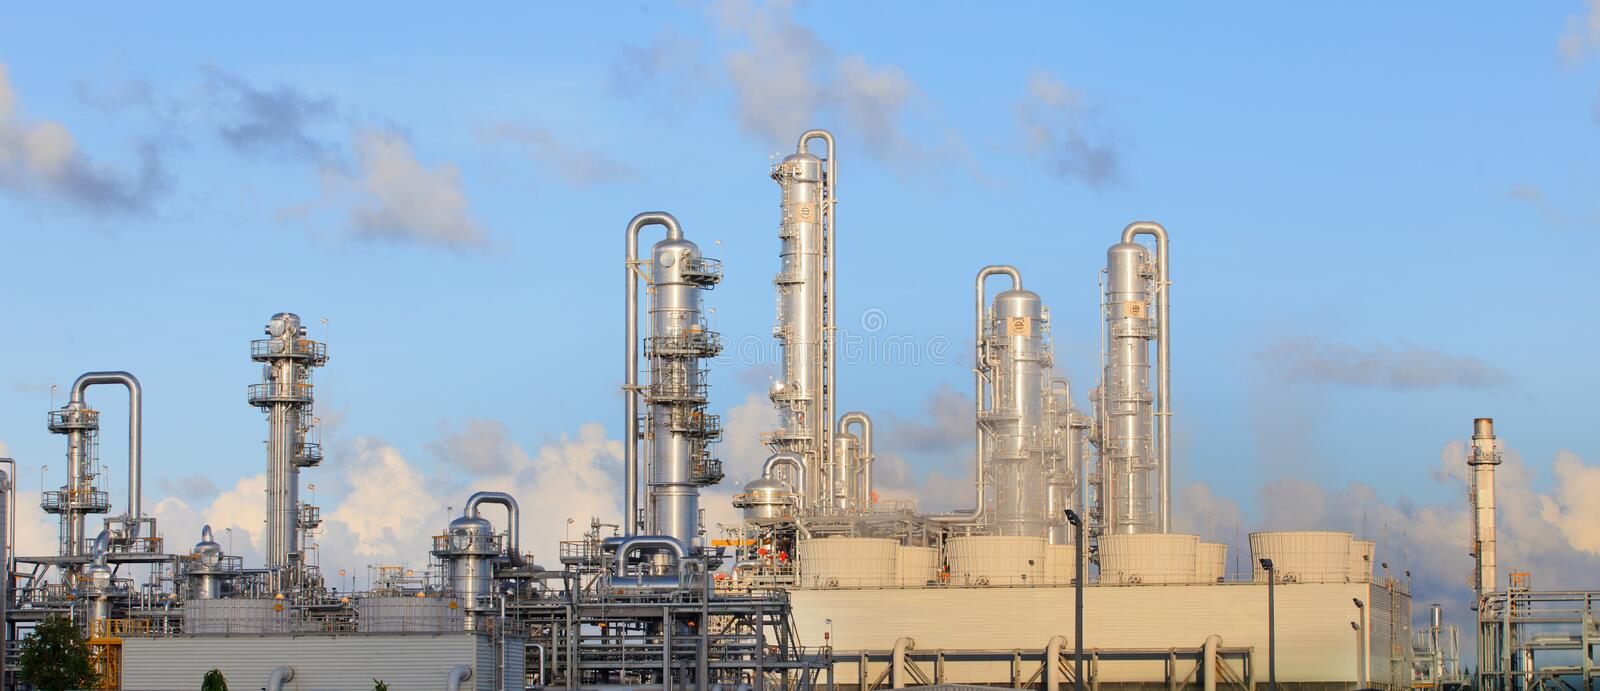 Refinery factory plant in heavy industry estate. Use for multipurpose royalty free stock image